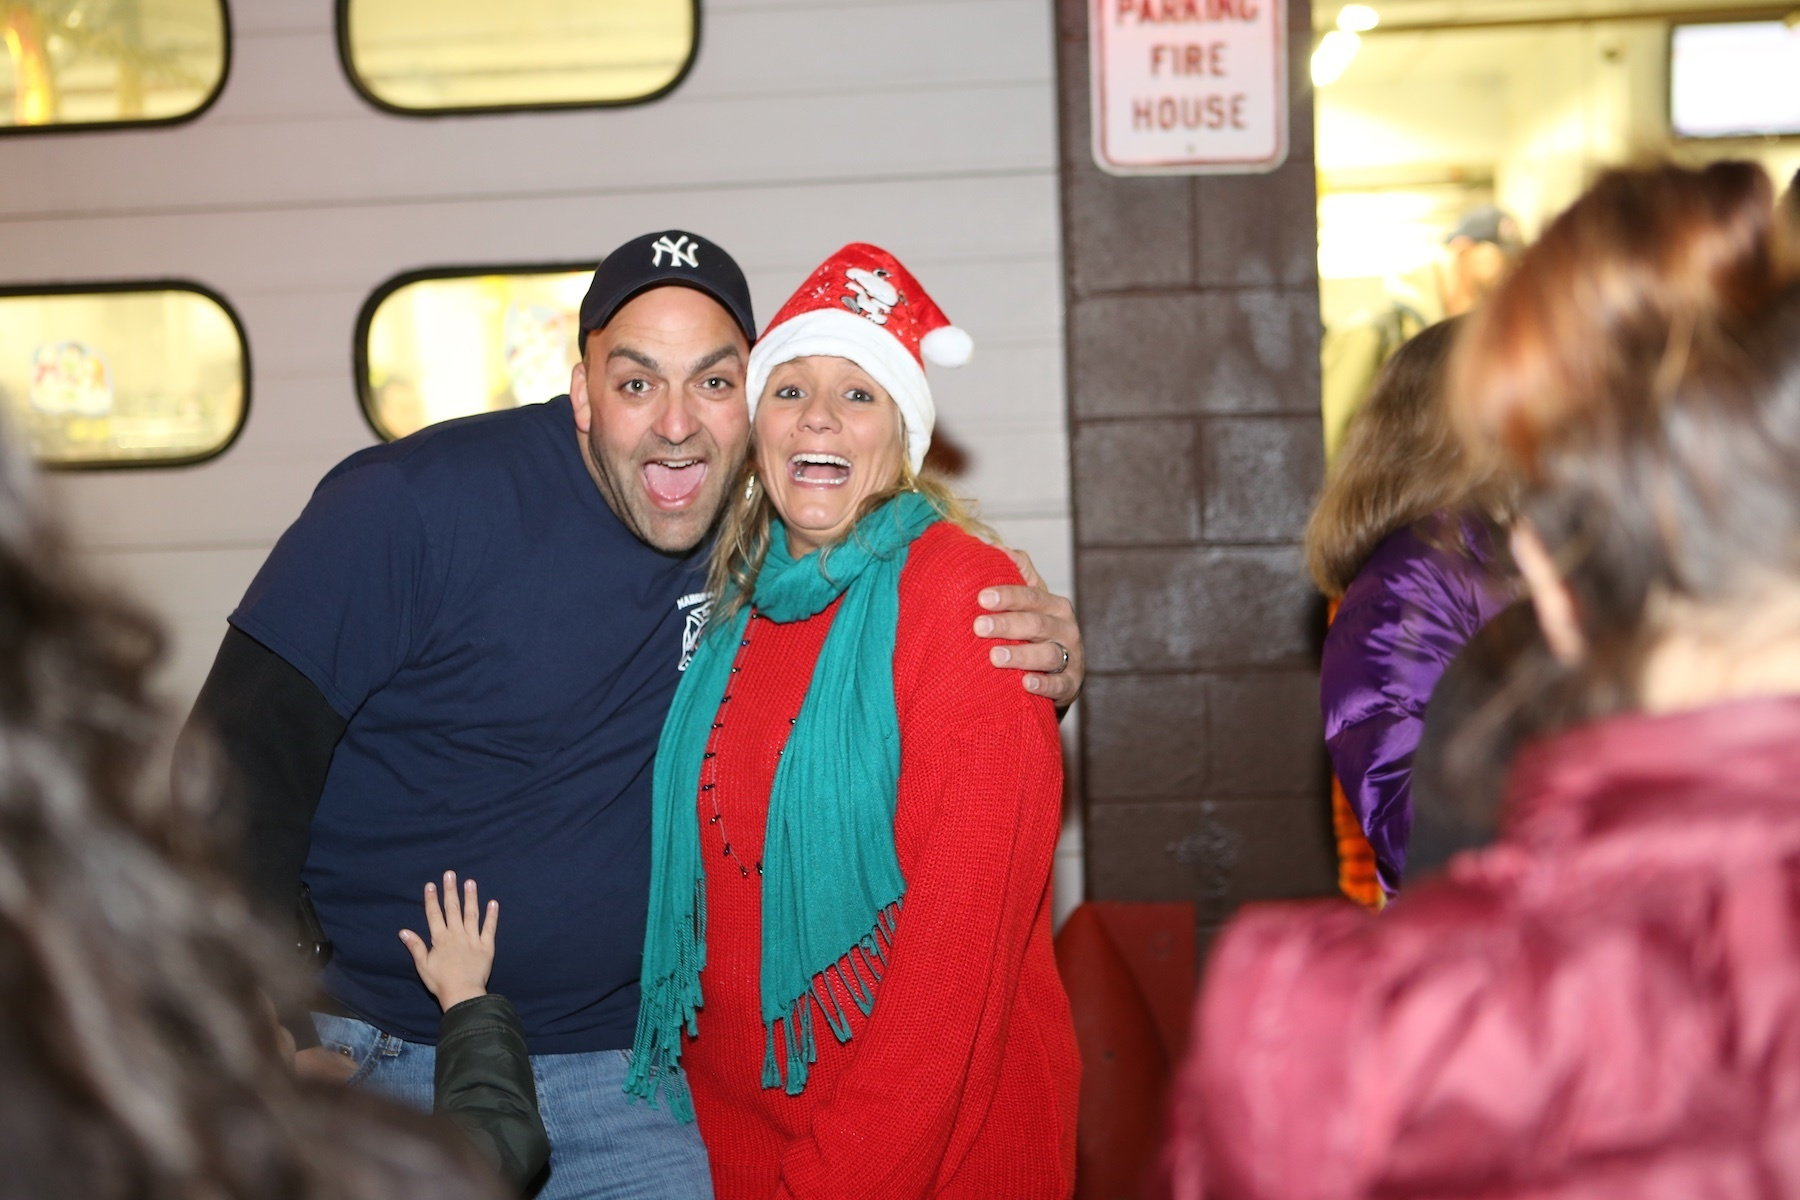 8addead0b64687e9cd8b_MN120415-MahopacFallsFDTreeLighting_17.jpg